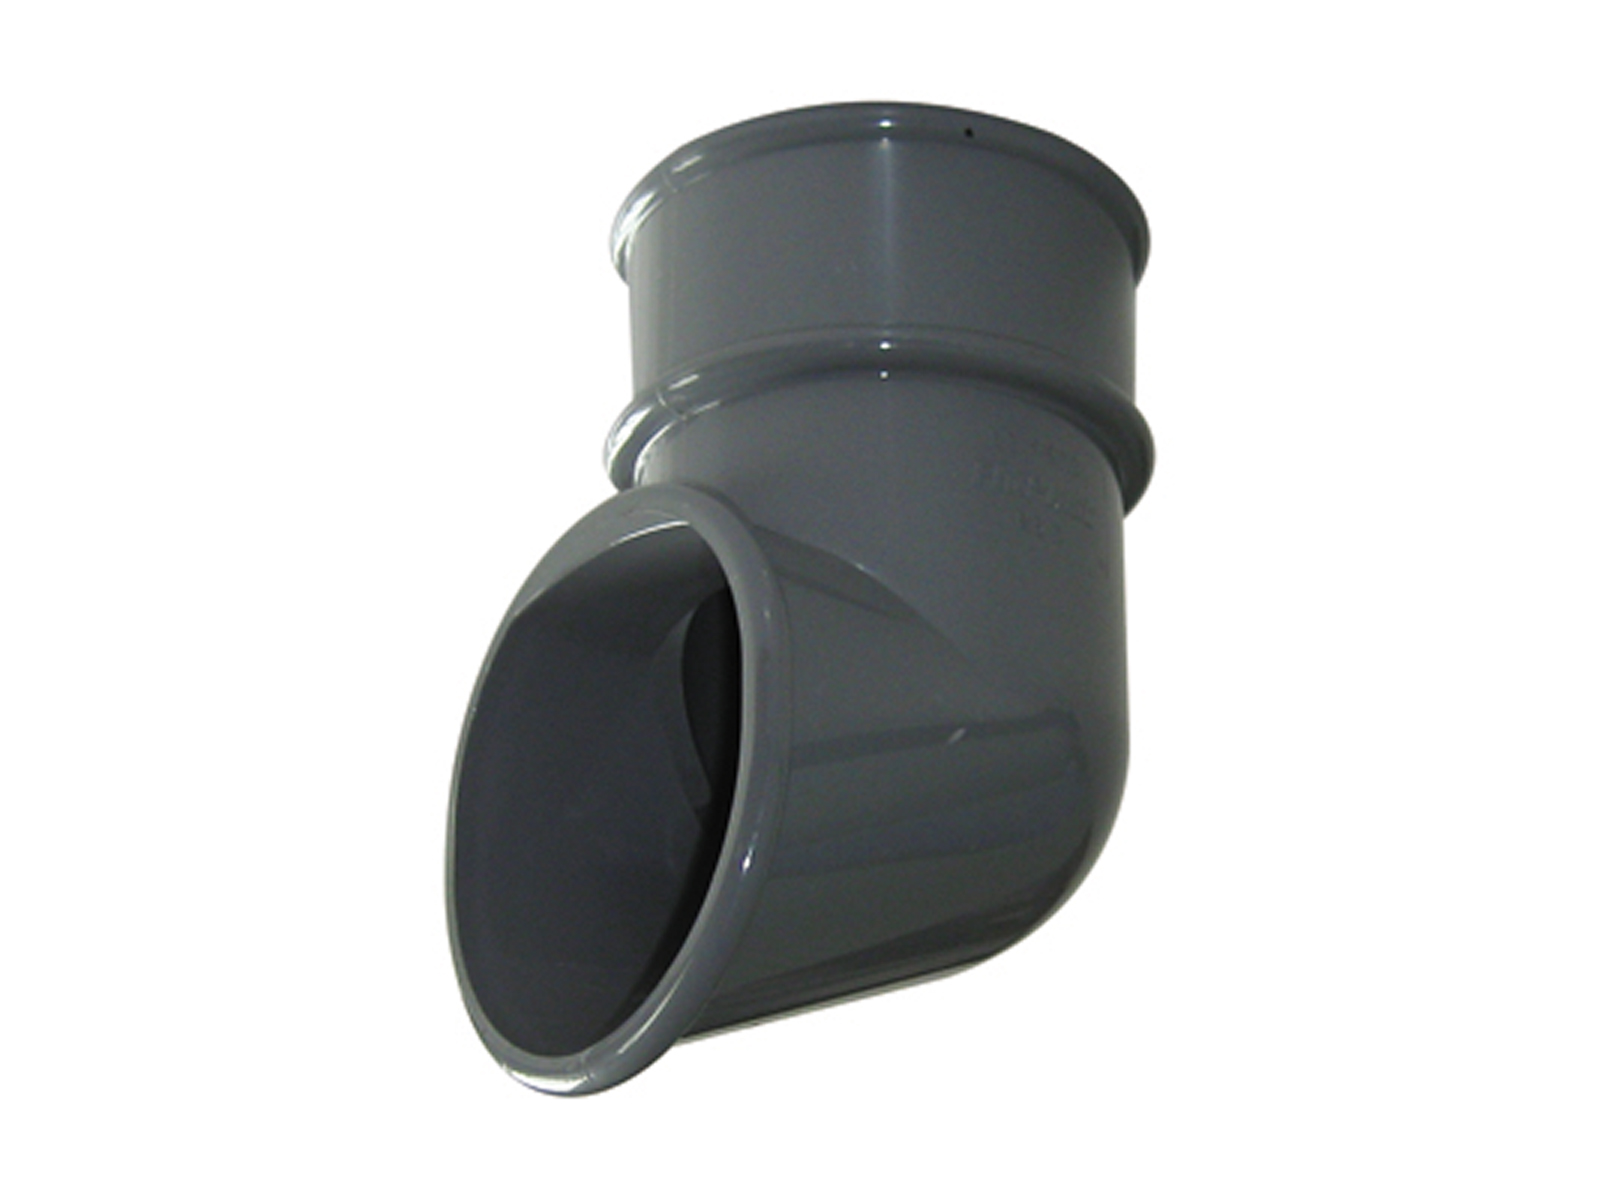 Floplast RB3GR 68mm Round Downpipe - Shoe - Grey